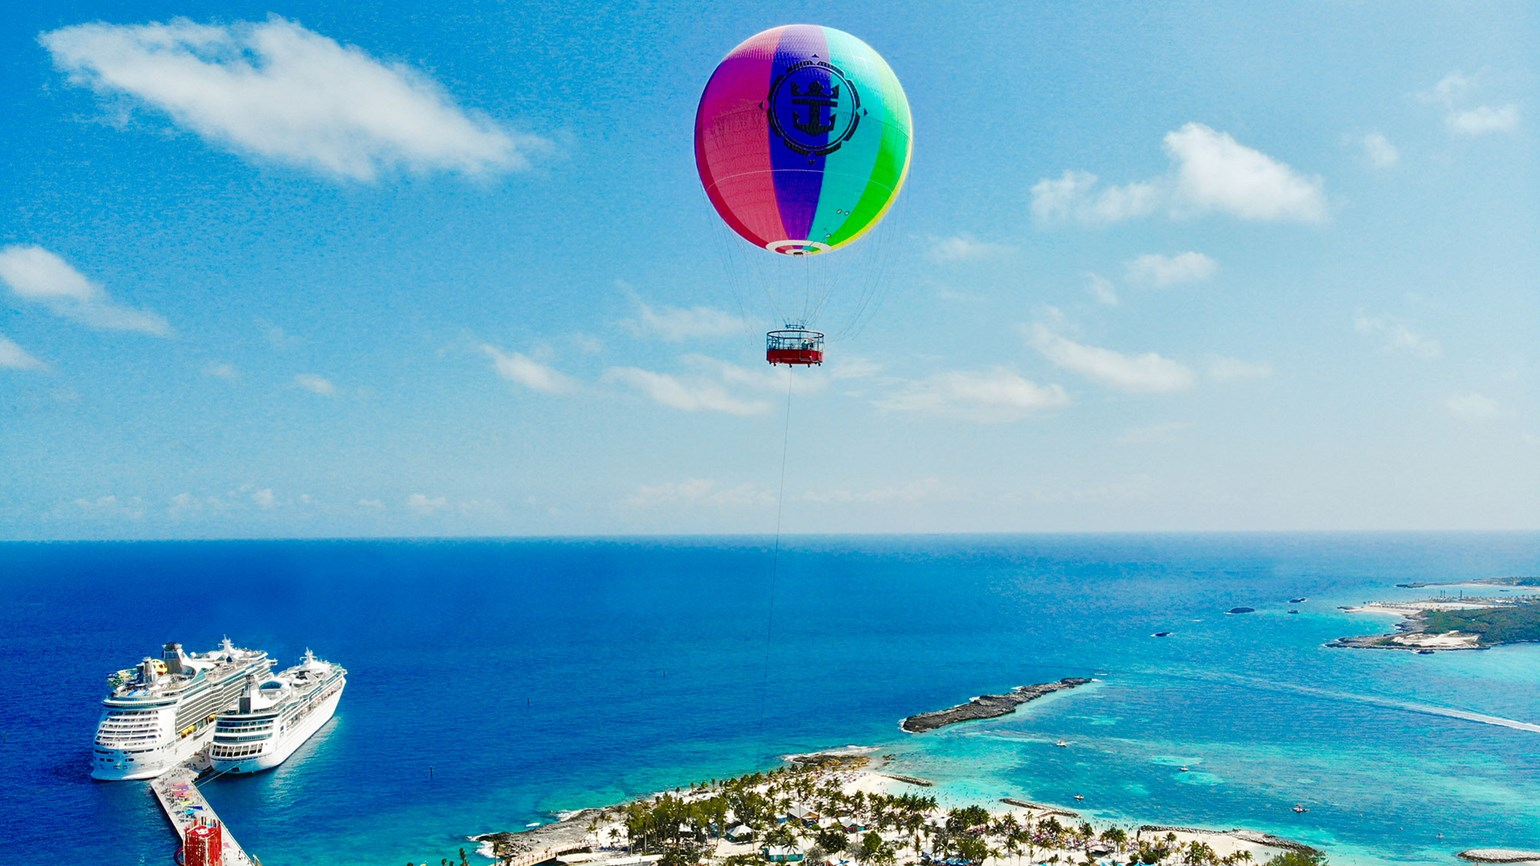 When Dorian threatened, Royal Caribbean had a balloon to deal with